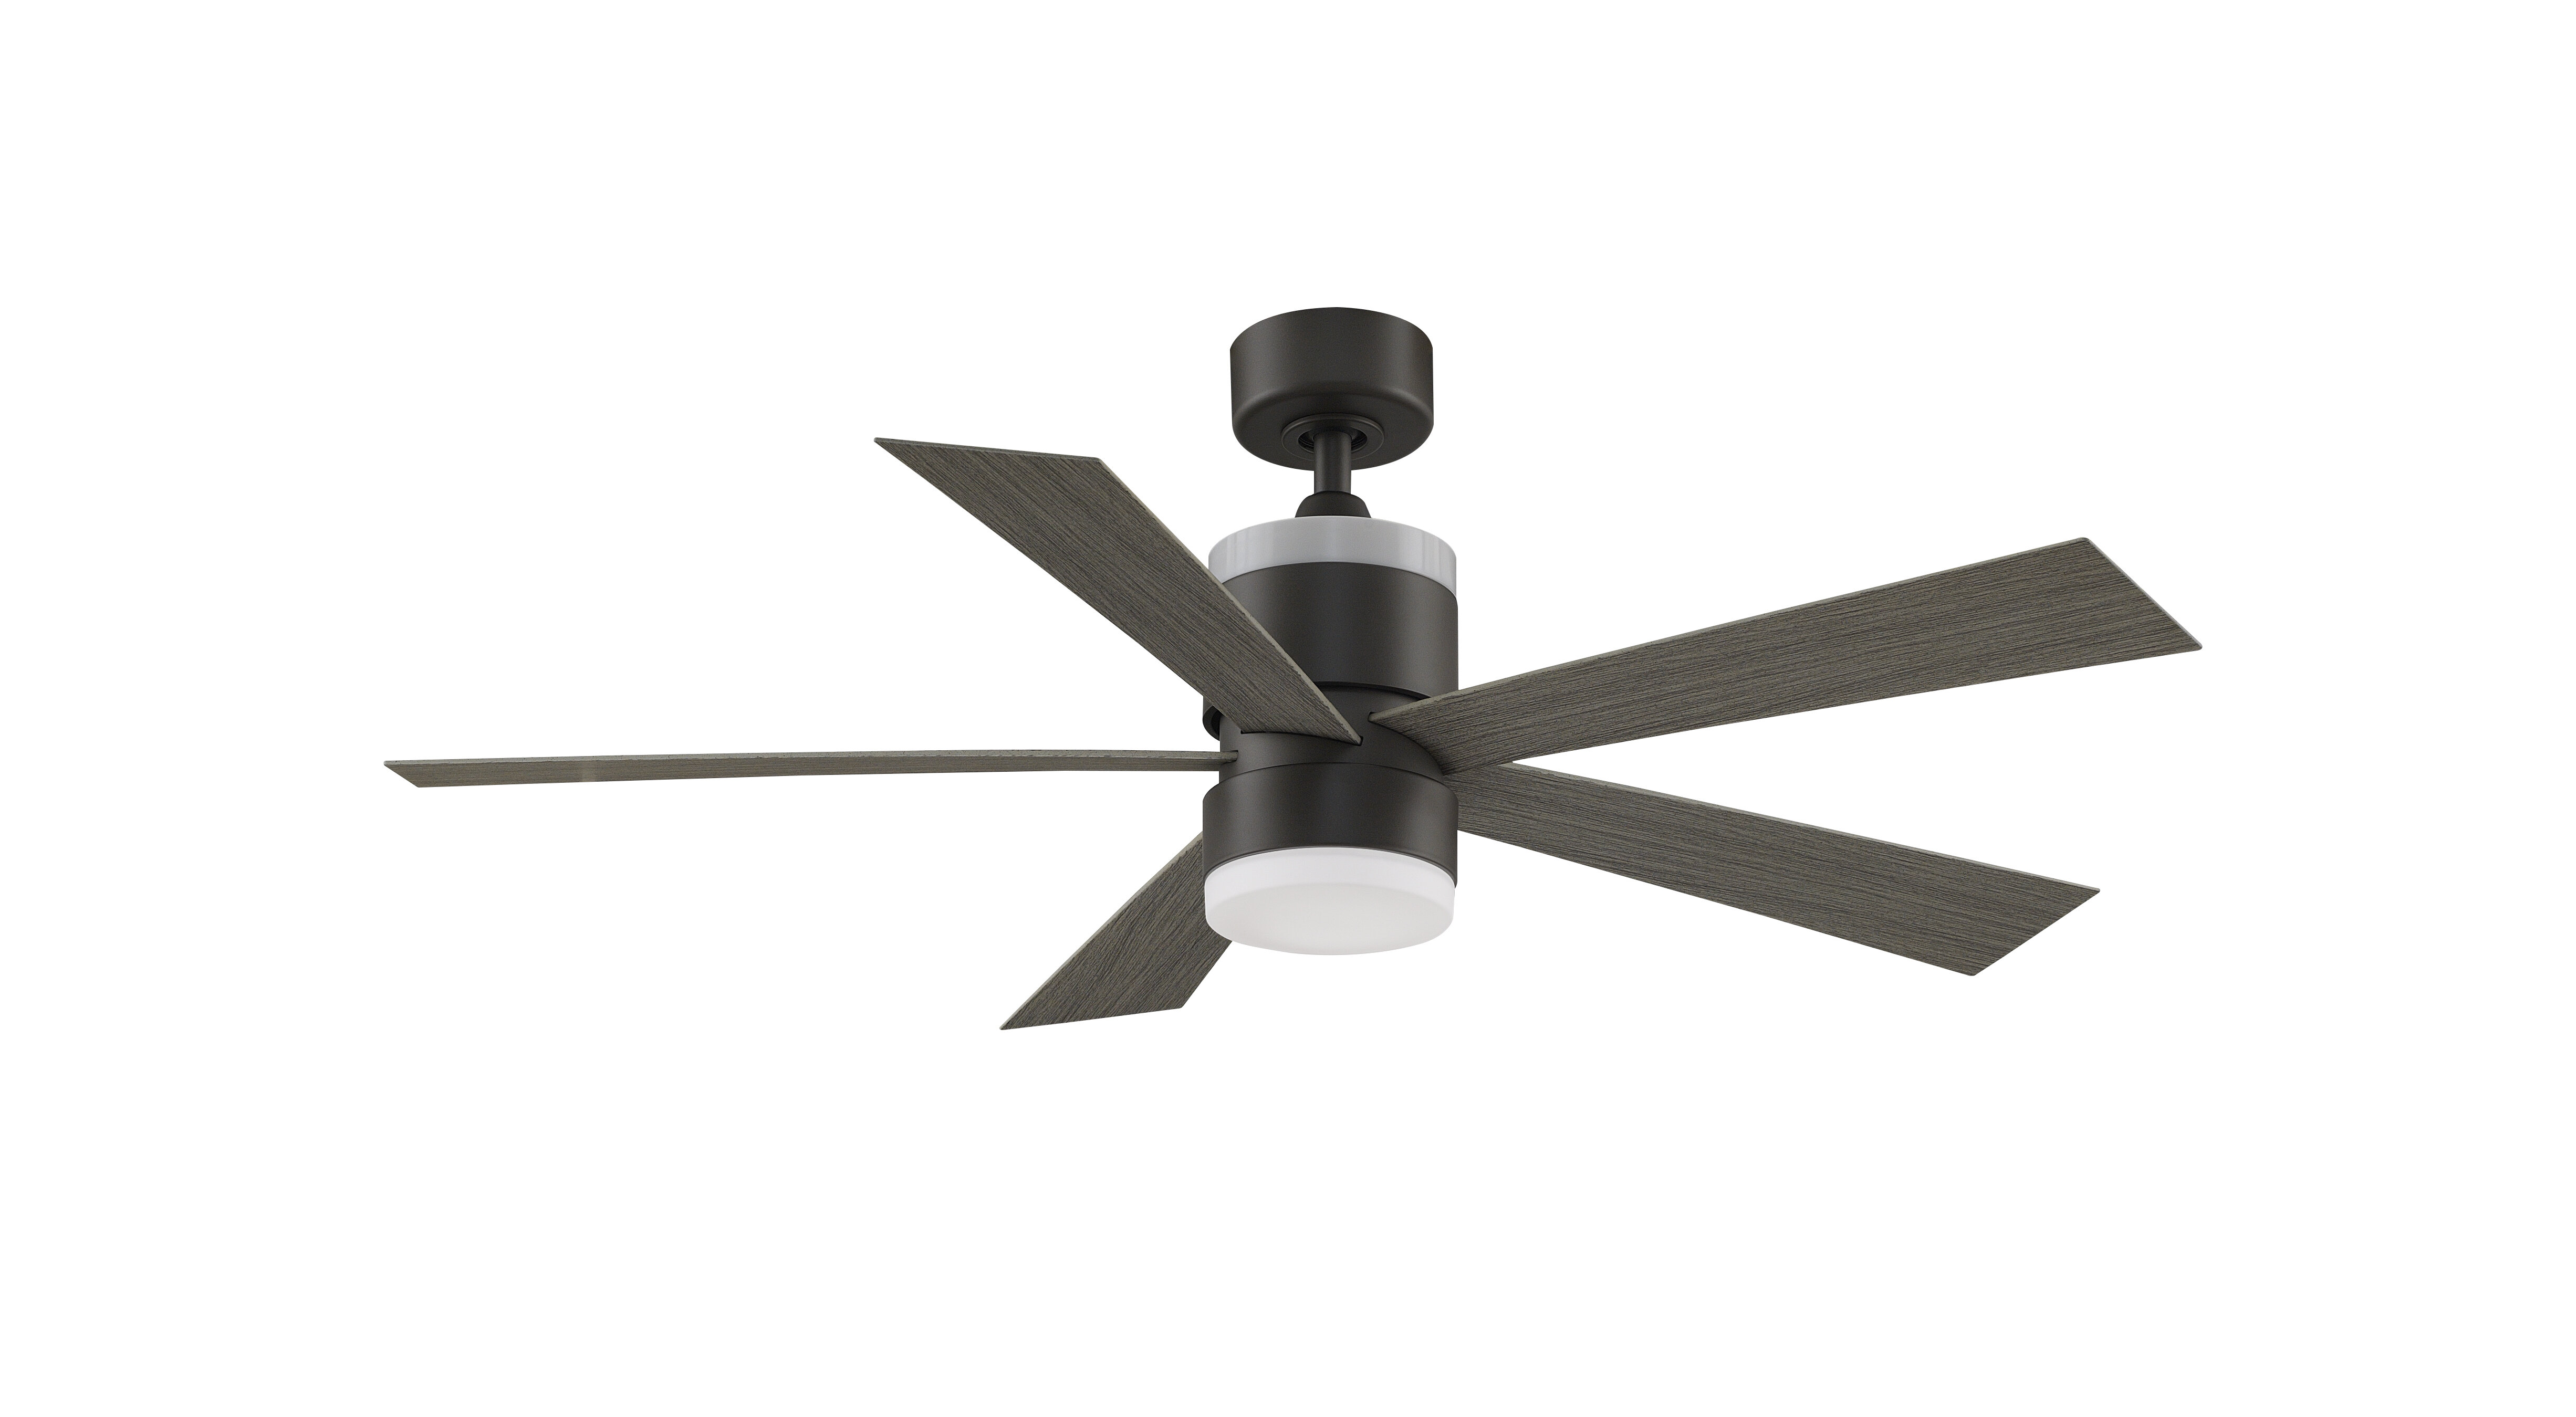 Fanimation 52 5 Blade Led Standard Ceiling Fan With Light Kit Included Wayfair